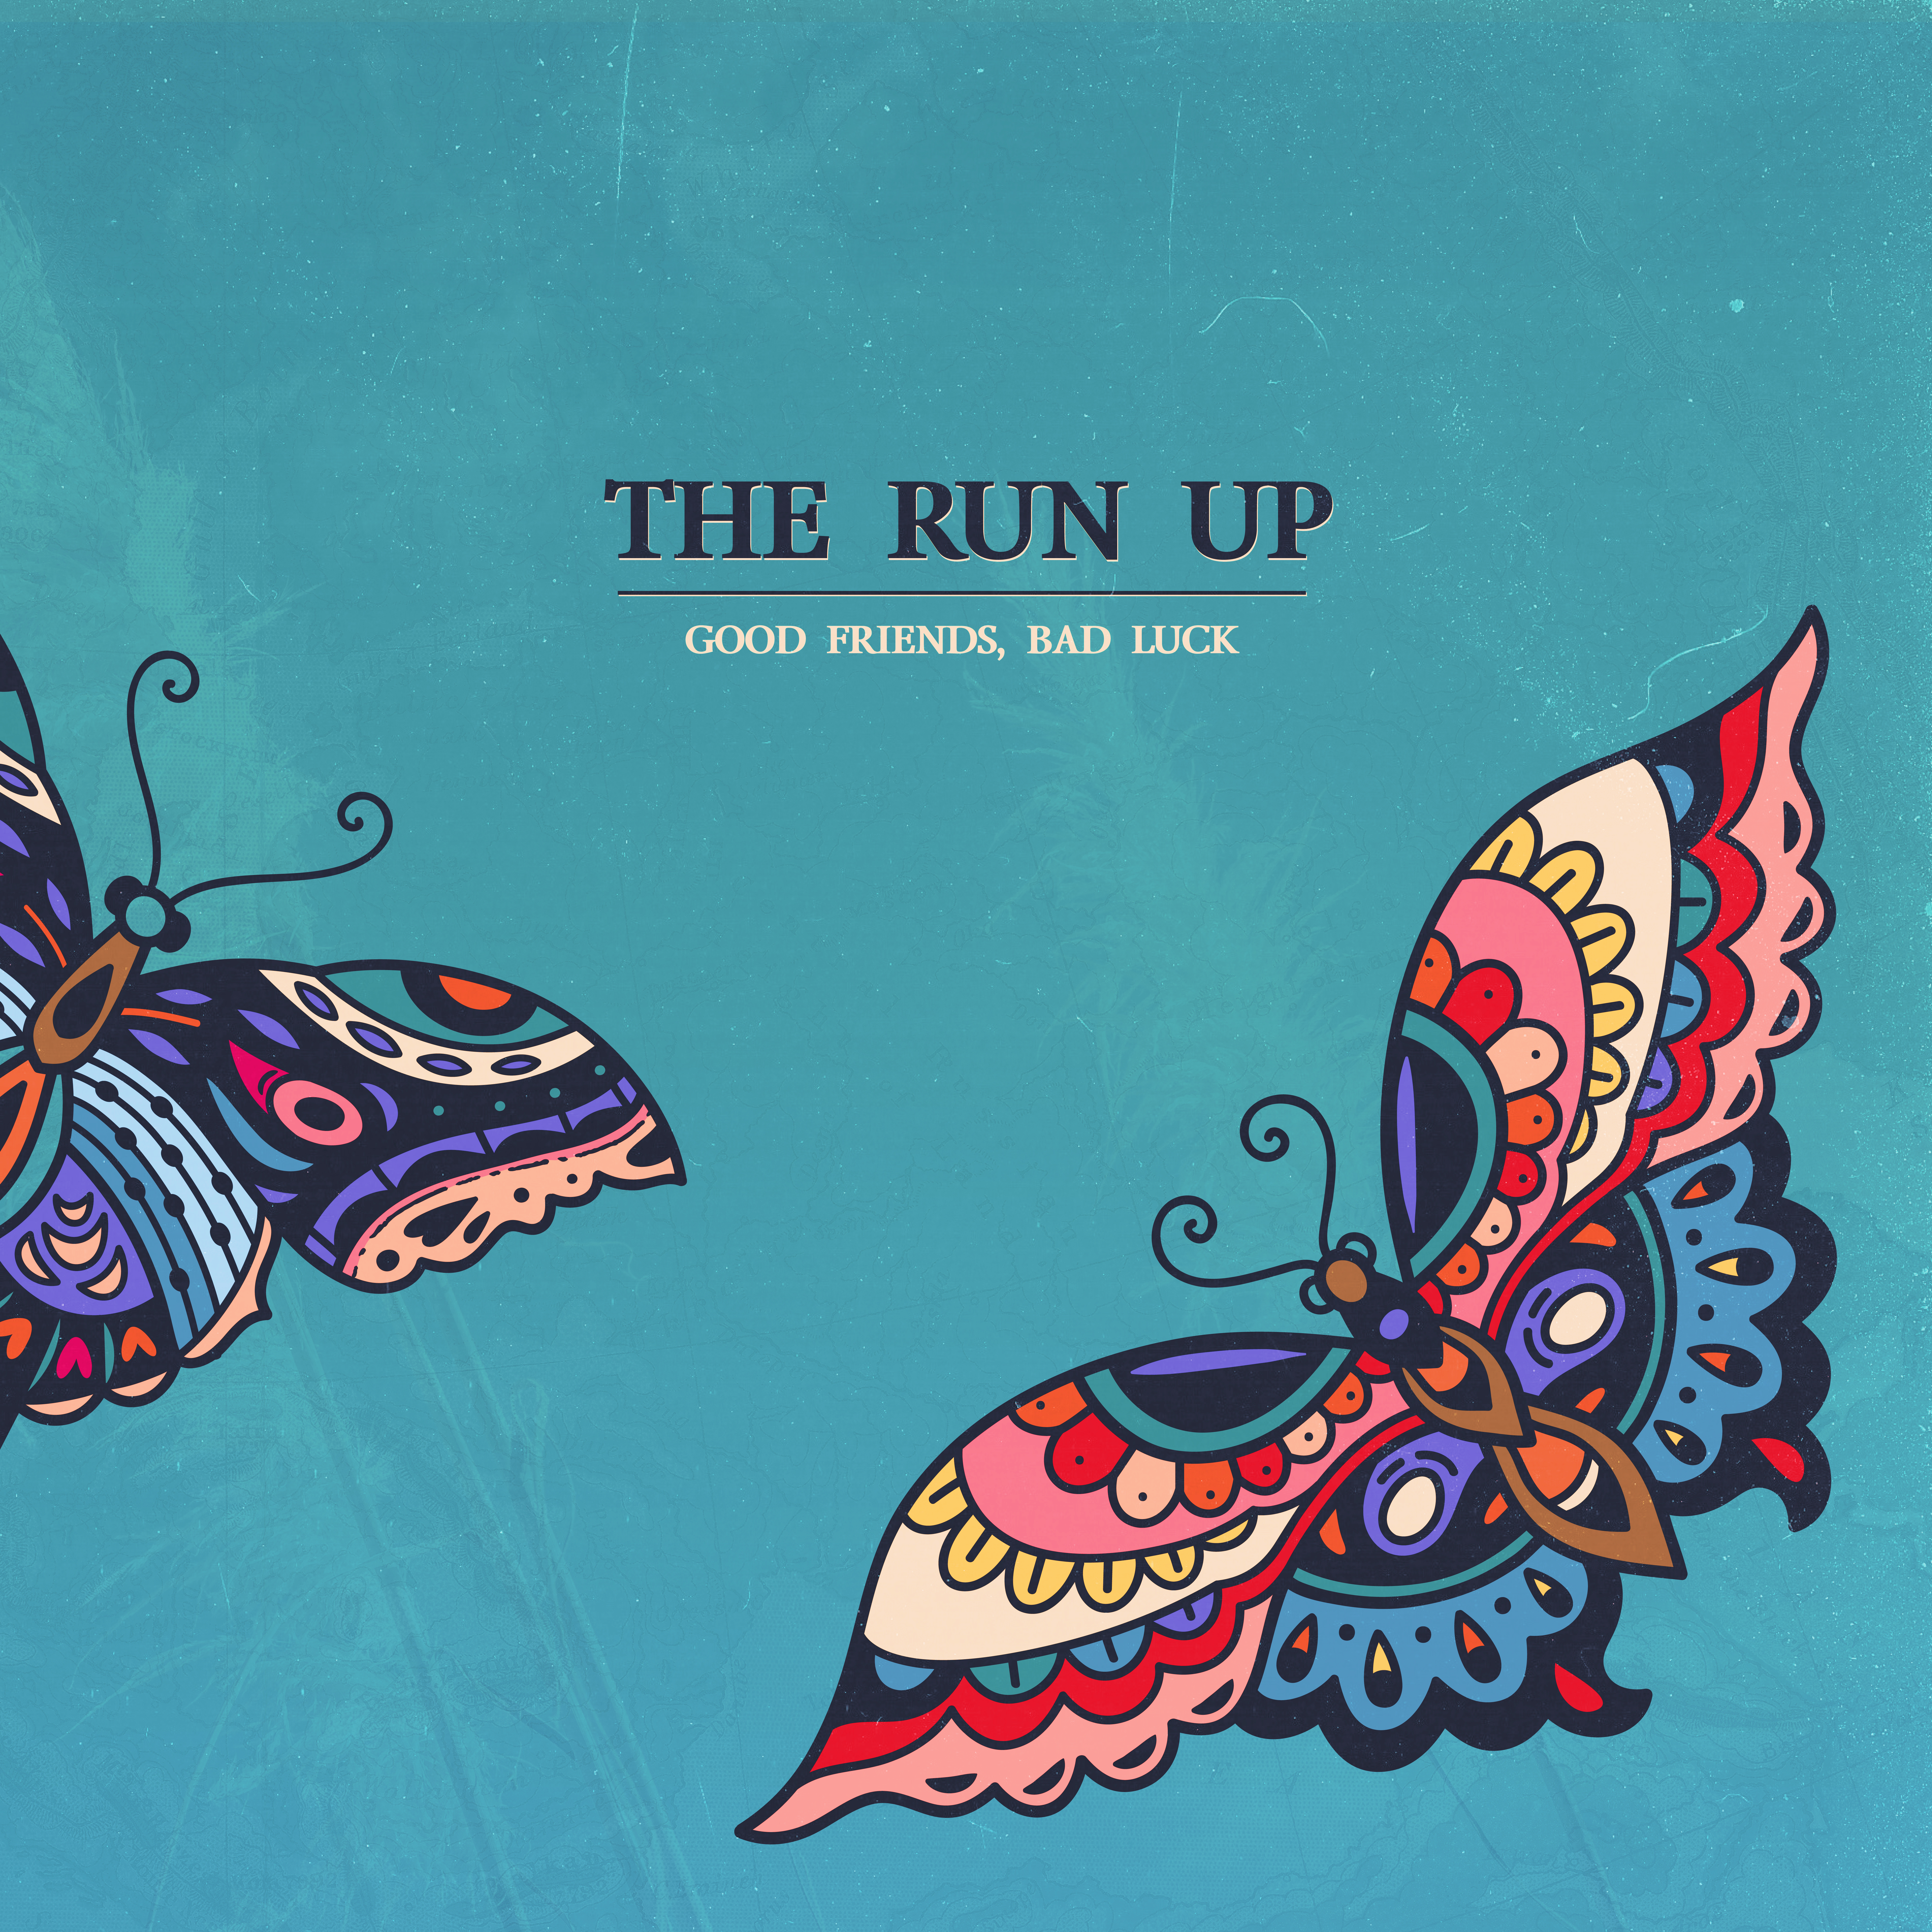 The Run Up - Good Friends, Bad Luck